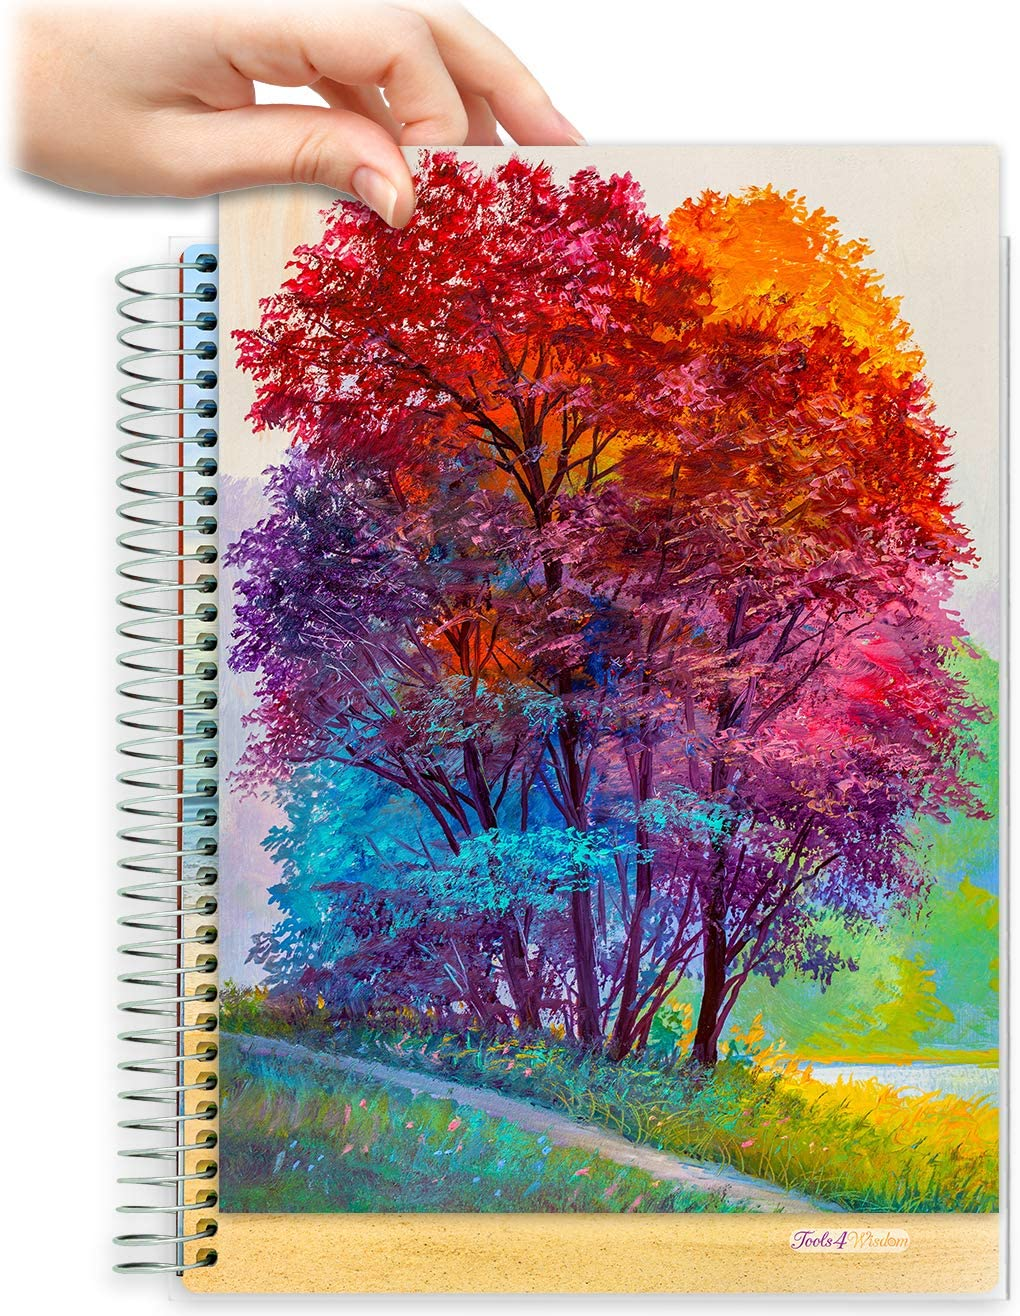 8.5x11 Customizable Softcover Planner • April 2021 to June 2022 Academic Year • Oil Painting Forest